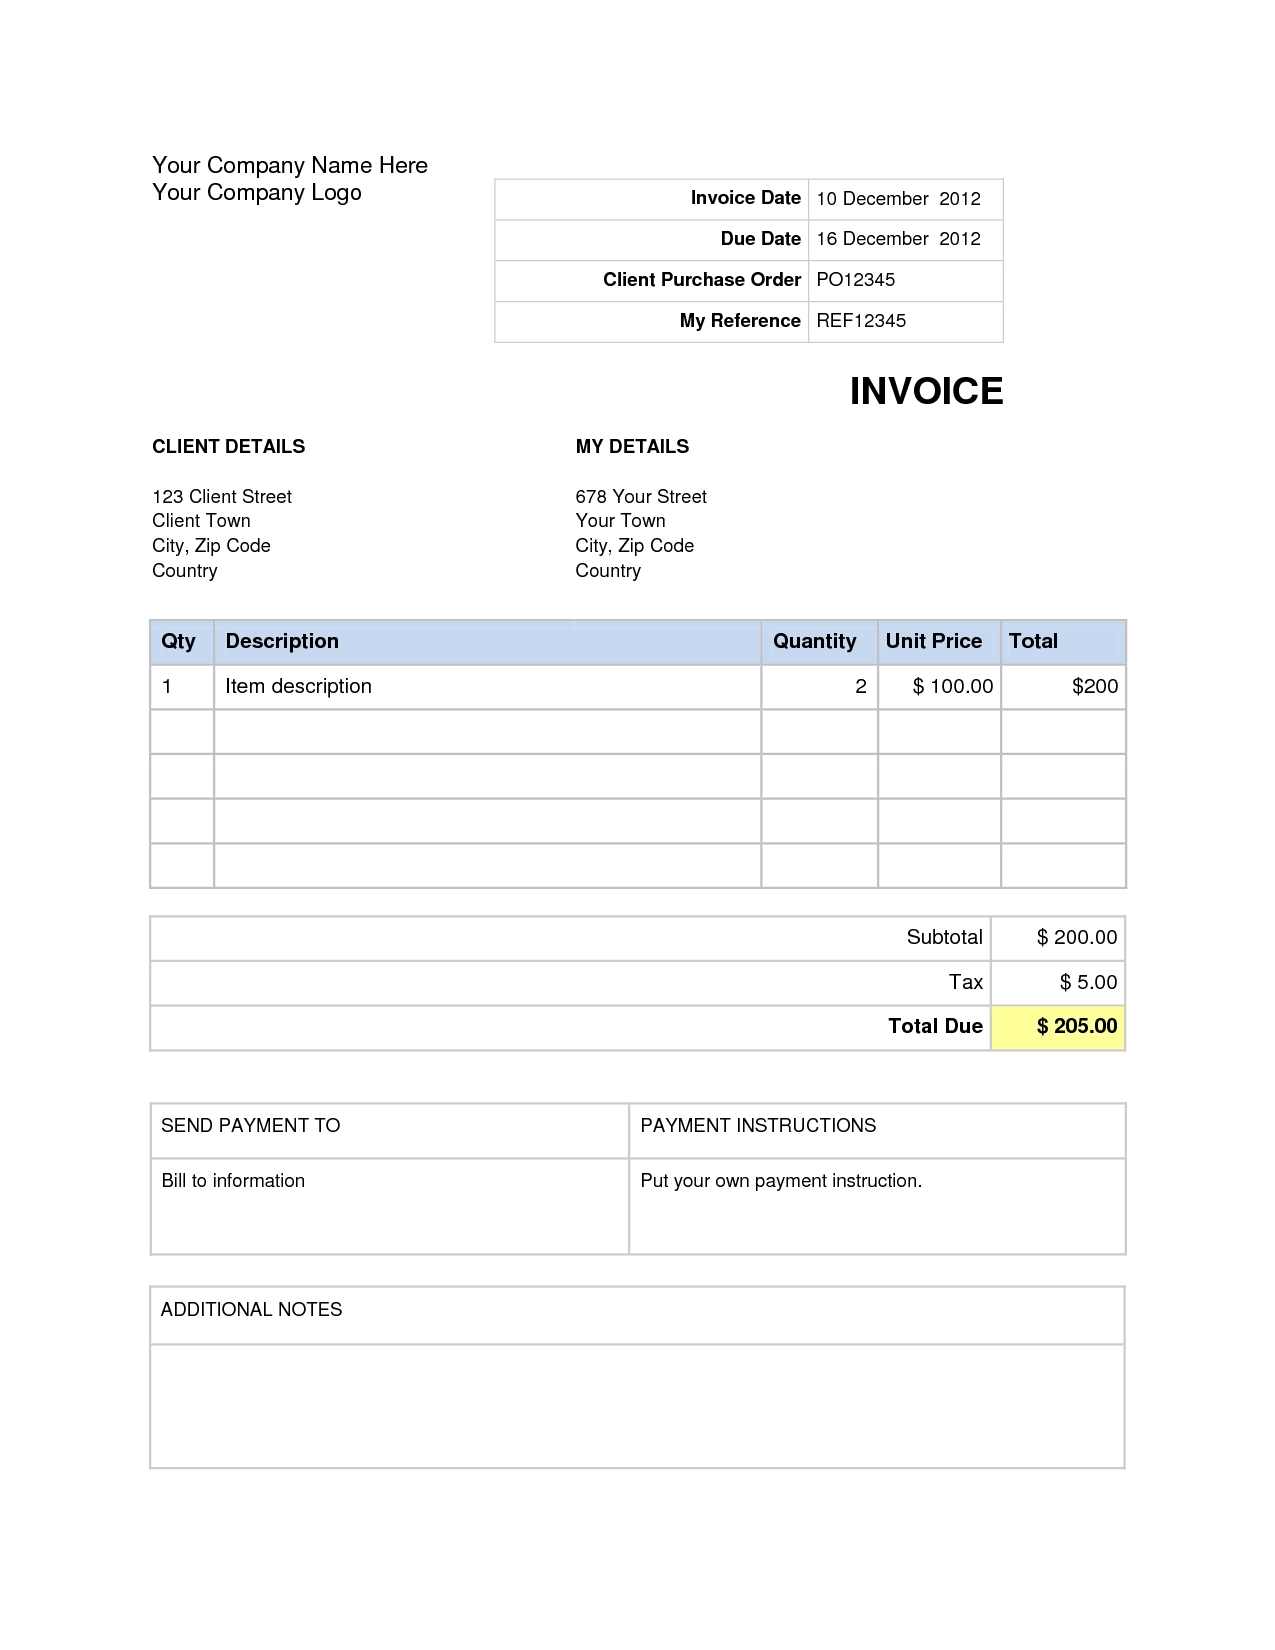 Third Party Invoice Blank Invoice Doc  Invoice Template Ideas Honda Accord 2015 Invoice Price Word with Hilton Hotel Receipt Word Doc Blank Invoice Microsoft Word Free Blank Invoice Blank Invoice Doc   Templates Invoices Free Excel